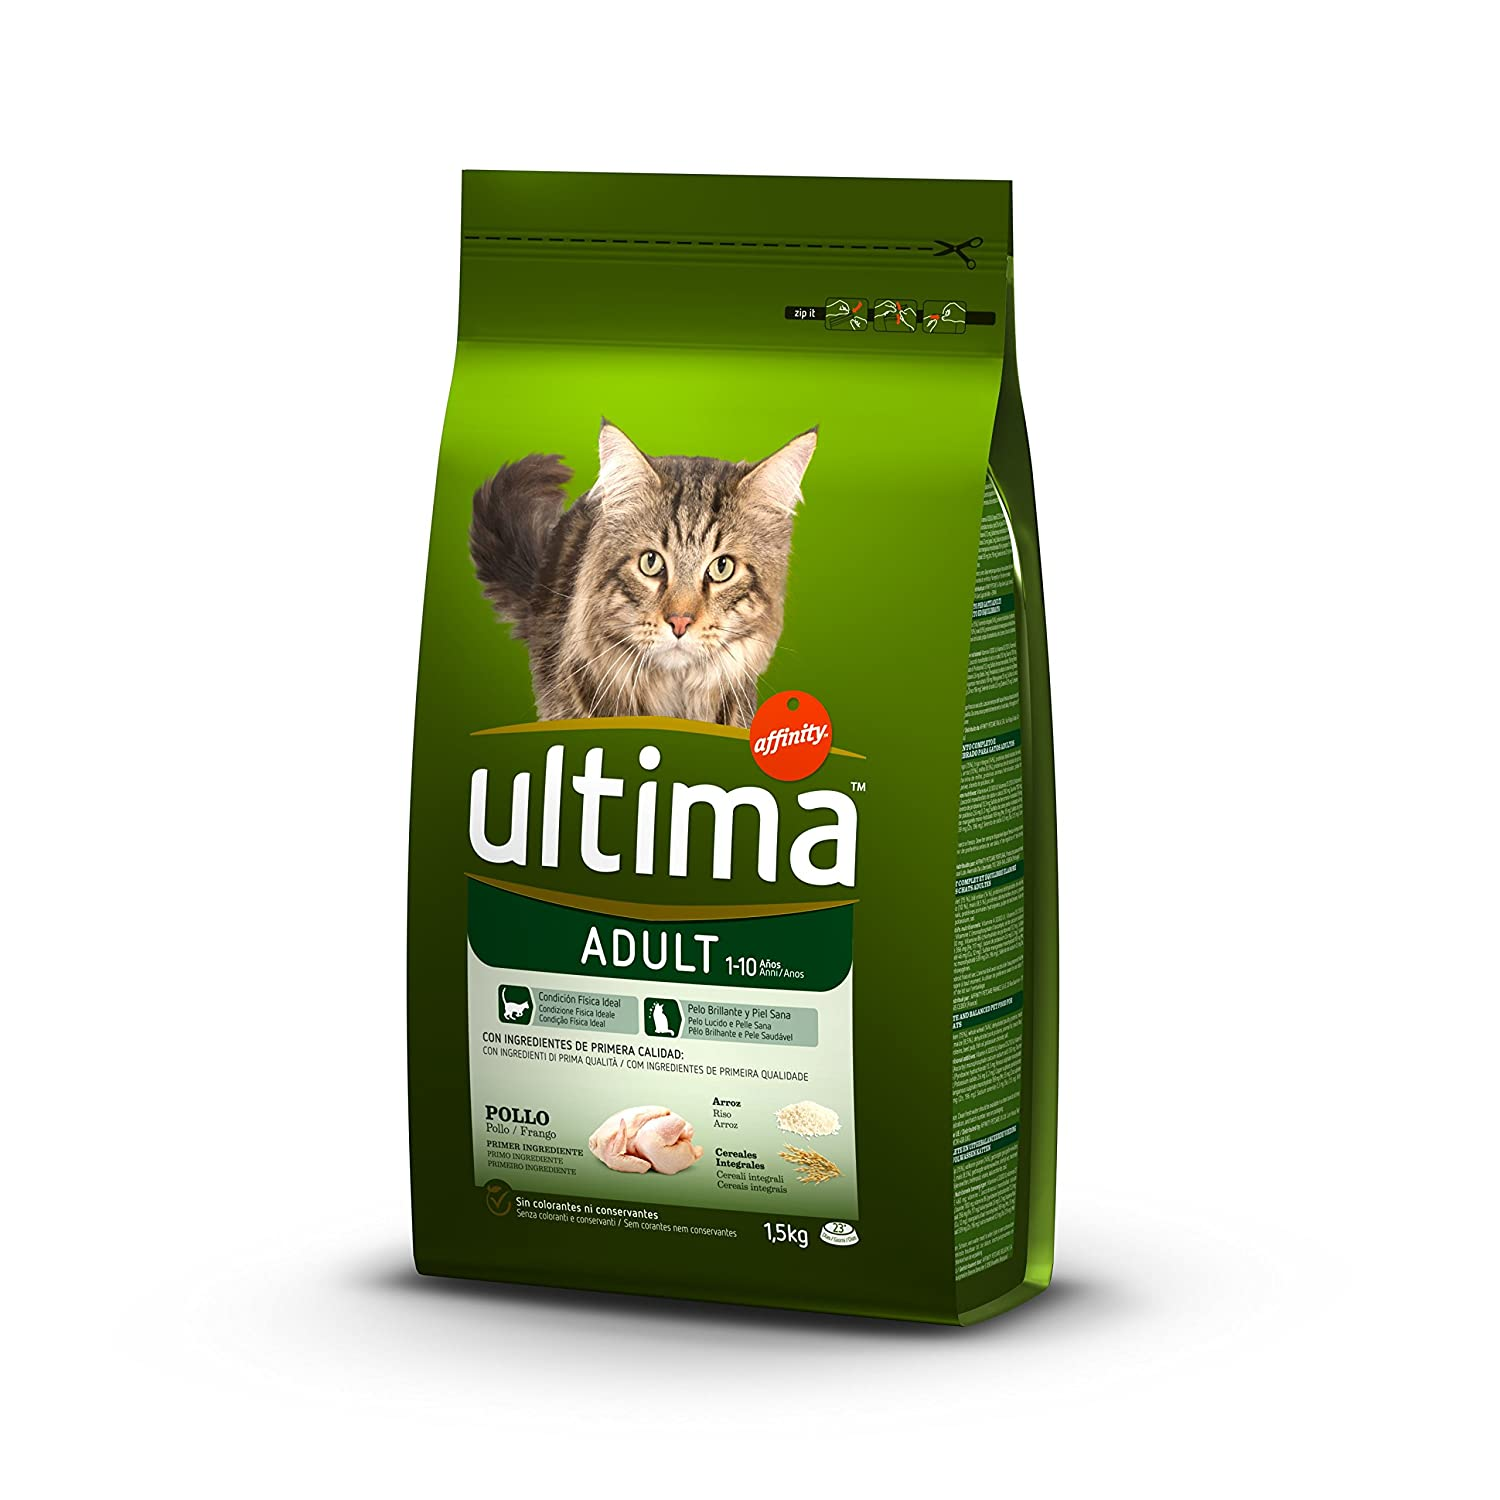 Ultima Alimento Para Gatos Adultos, Sabor de Pollo - 1500 gr: Amazon.es: Amazon Pantry